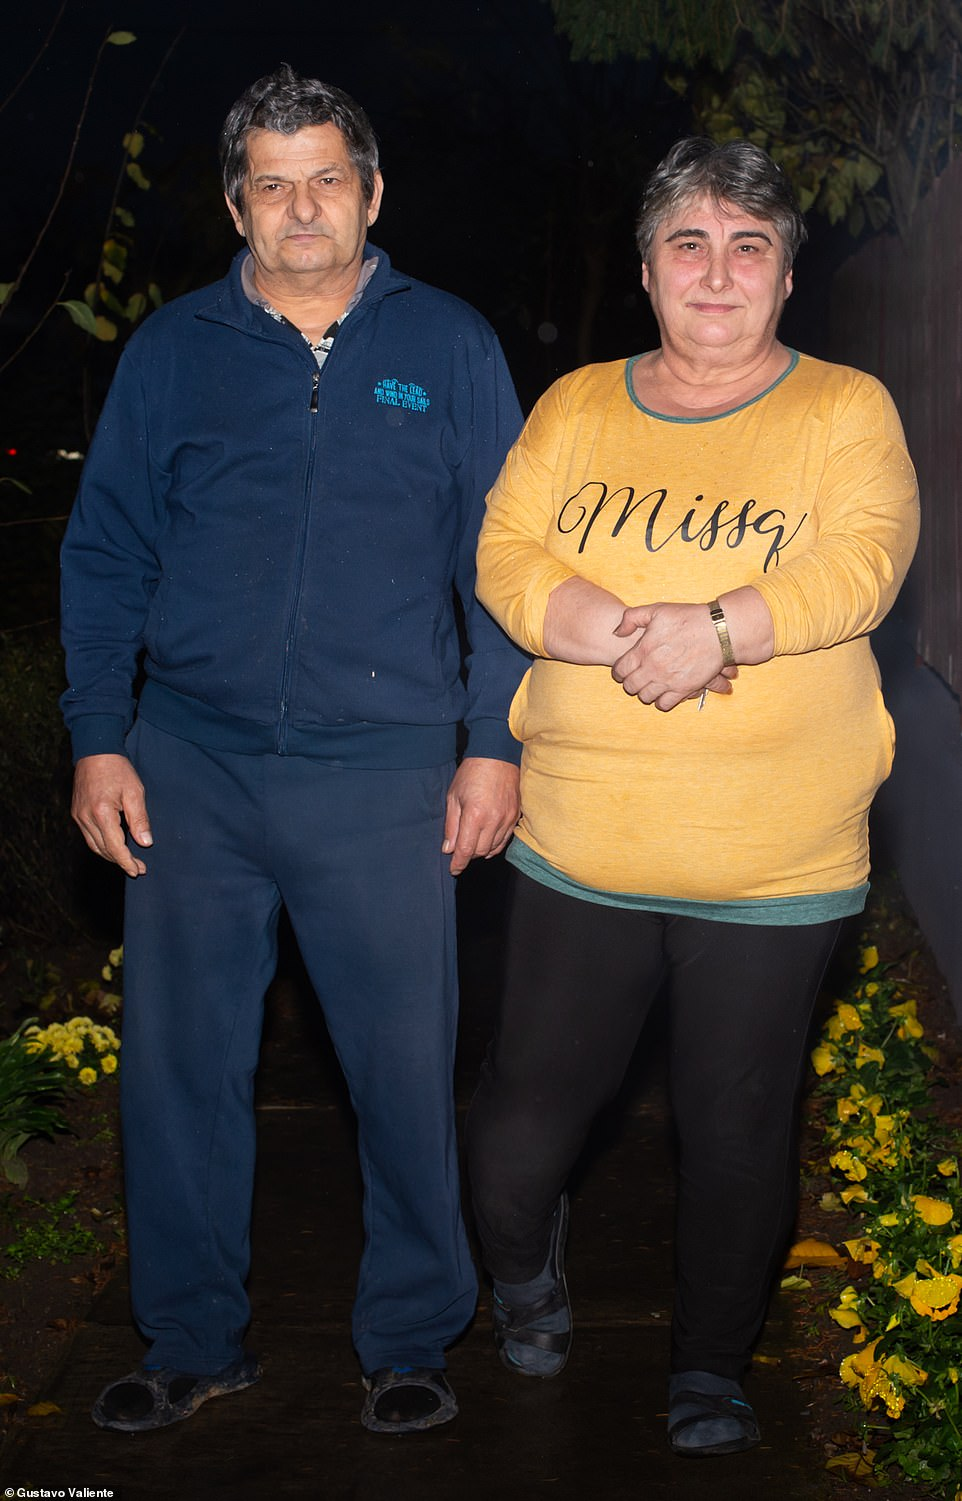 Katalin Nagy, 56, (with her husband) has been working at the factory for 42 years since she was 14 years old. She also worked as a seamstress on the Stella McCartney coat range, but more recently since orders have dried up she's been a cleaner